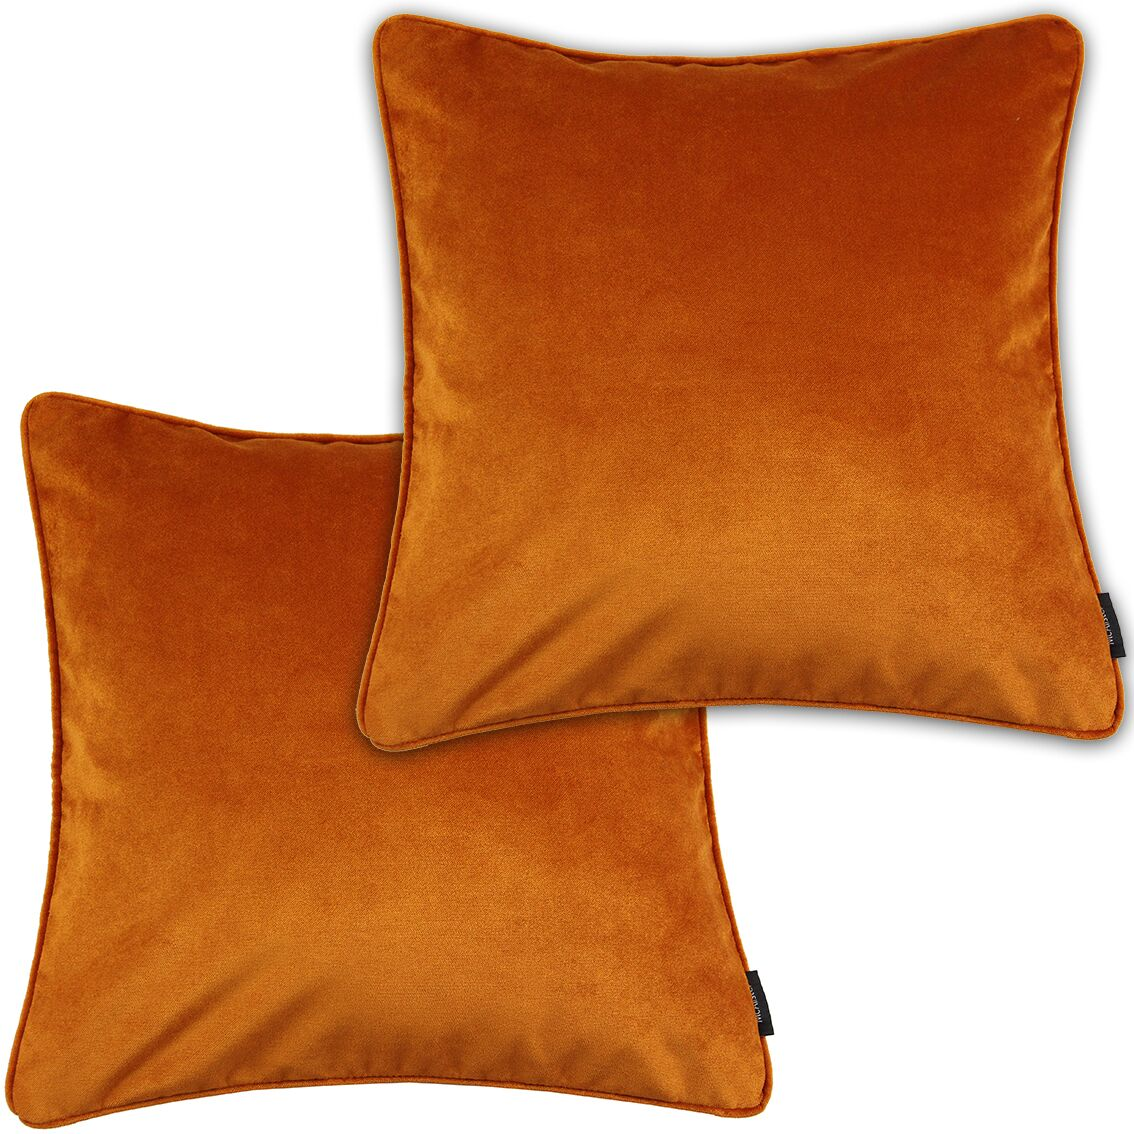 McAlister Textiles Matt Burnt Orange Velvet 43cm x 43cm Cushion Sets Cushions and Covers Cushion Covers Set of 2